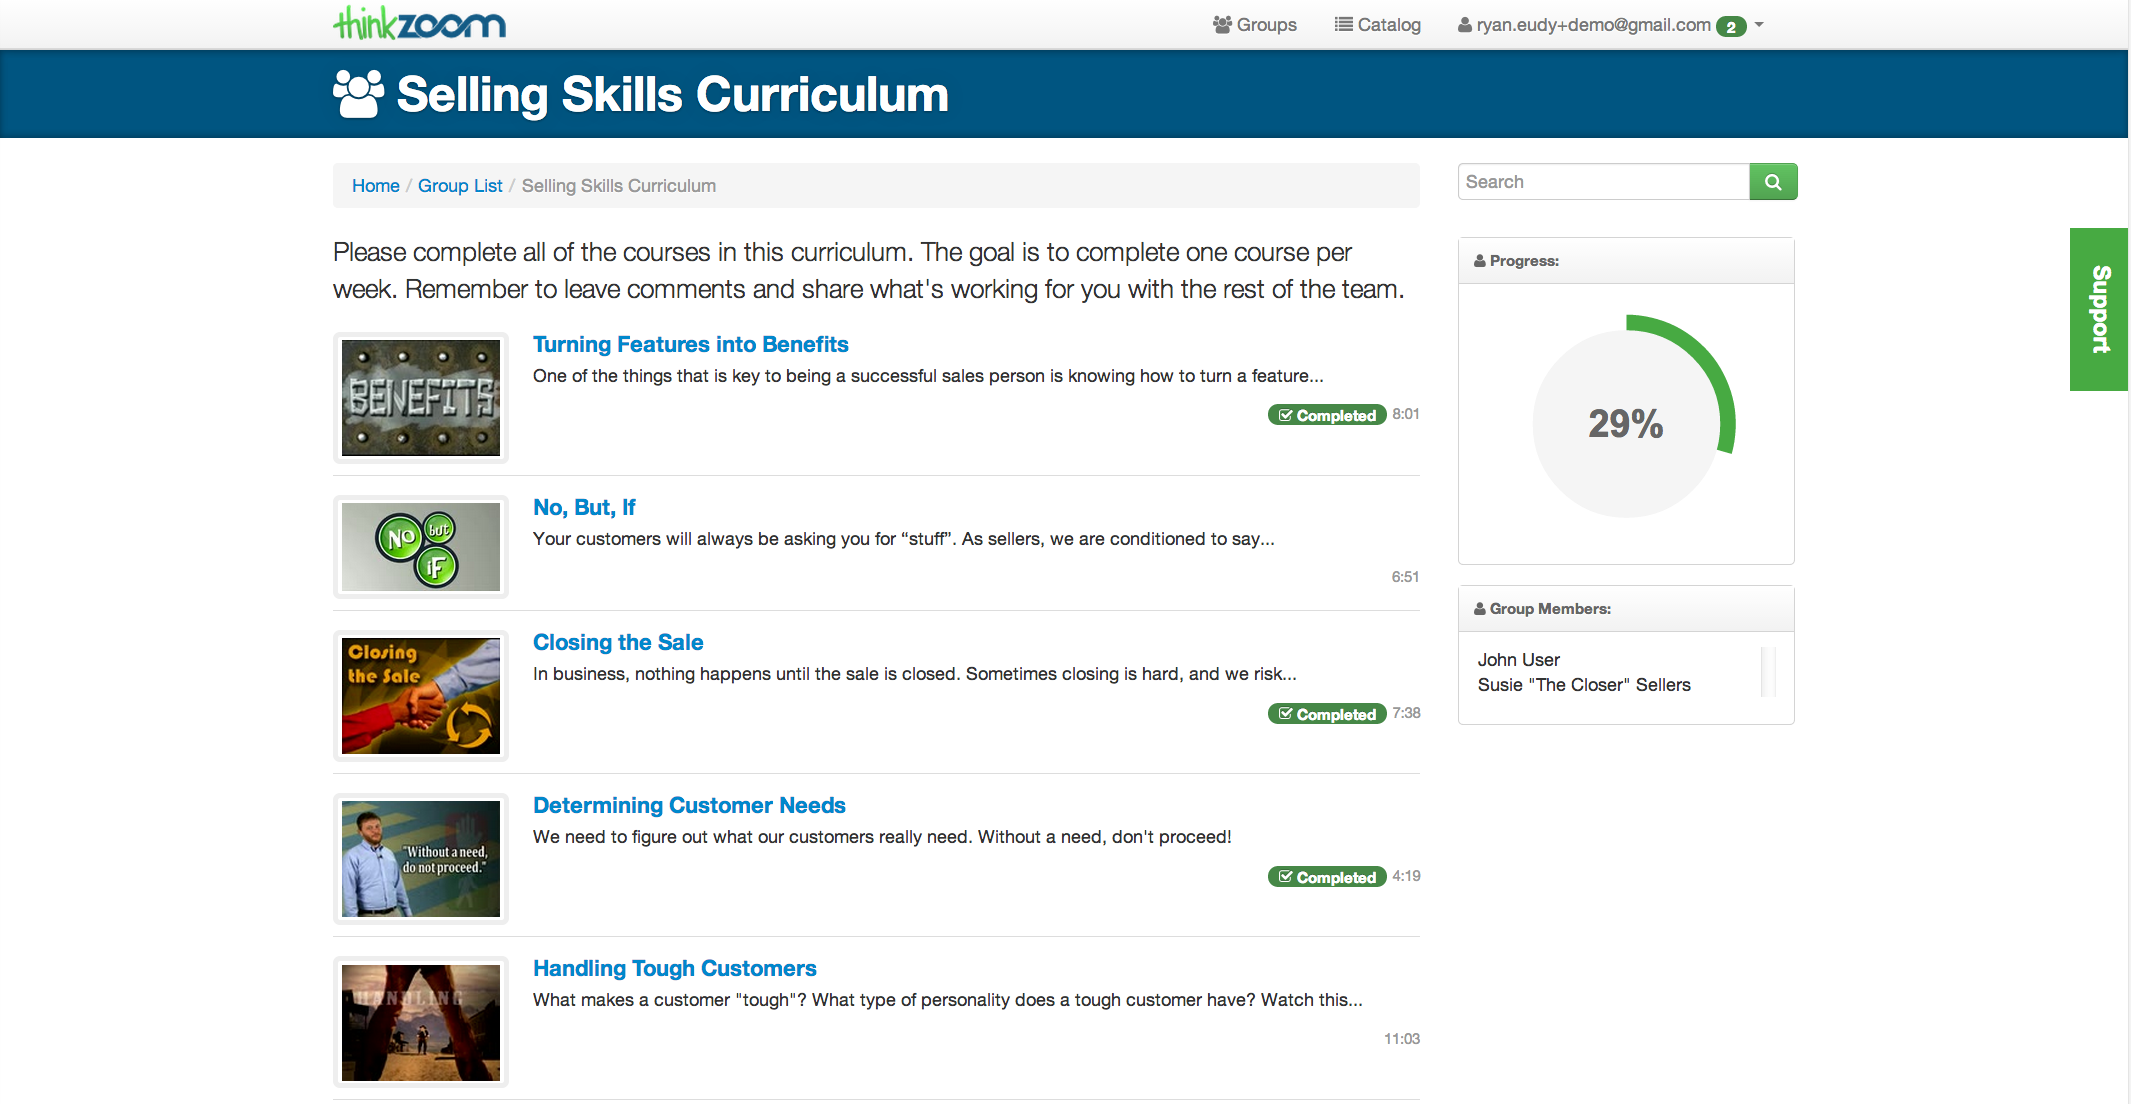 Selling Skills Curriculum Top